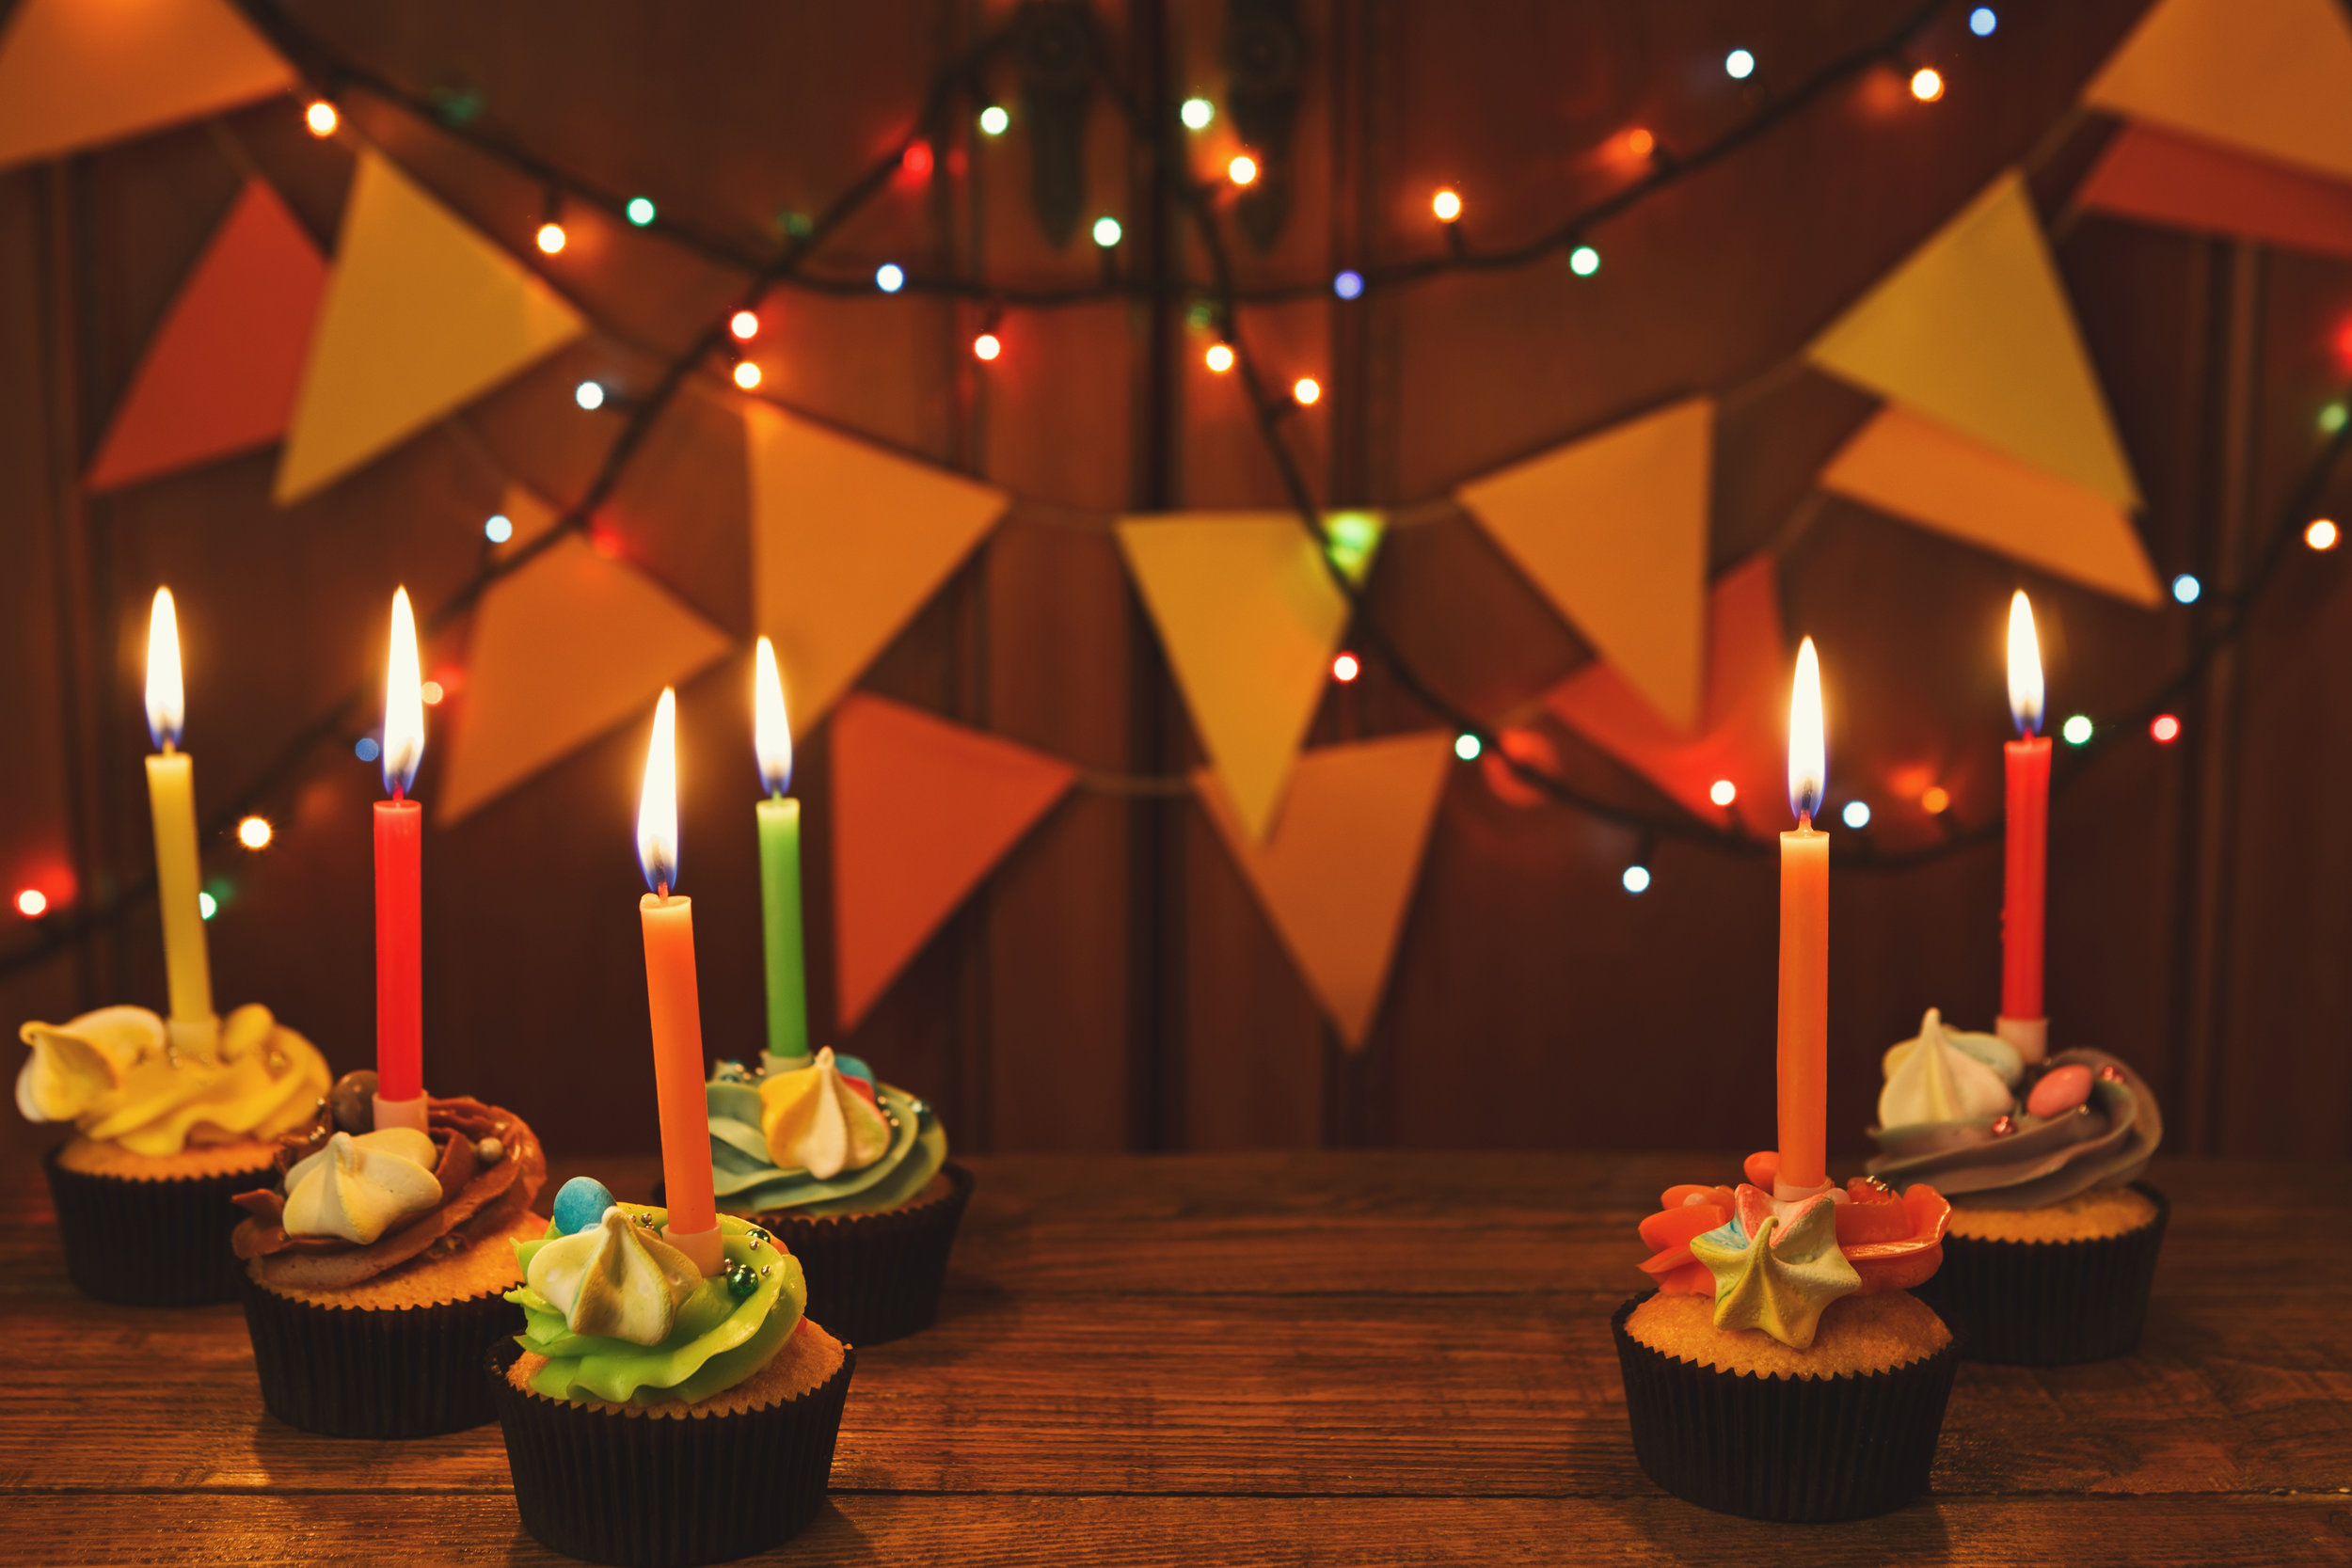 chocolate-cupcakes-with-candles-against-festive-F2TBWSQ.jpg